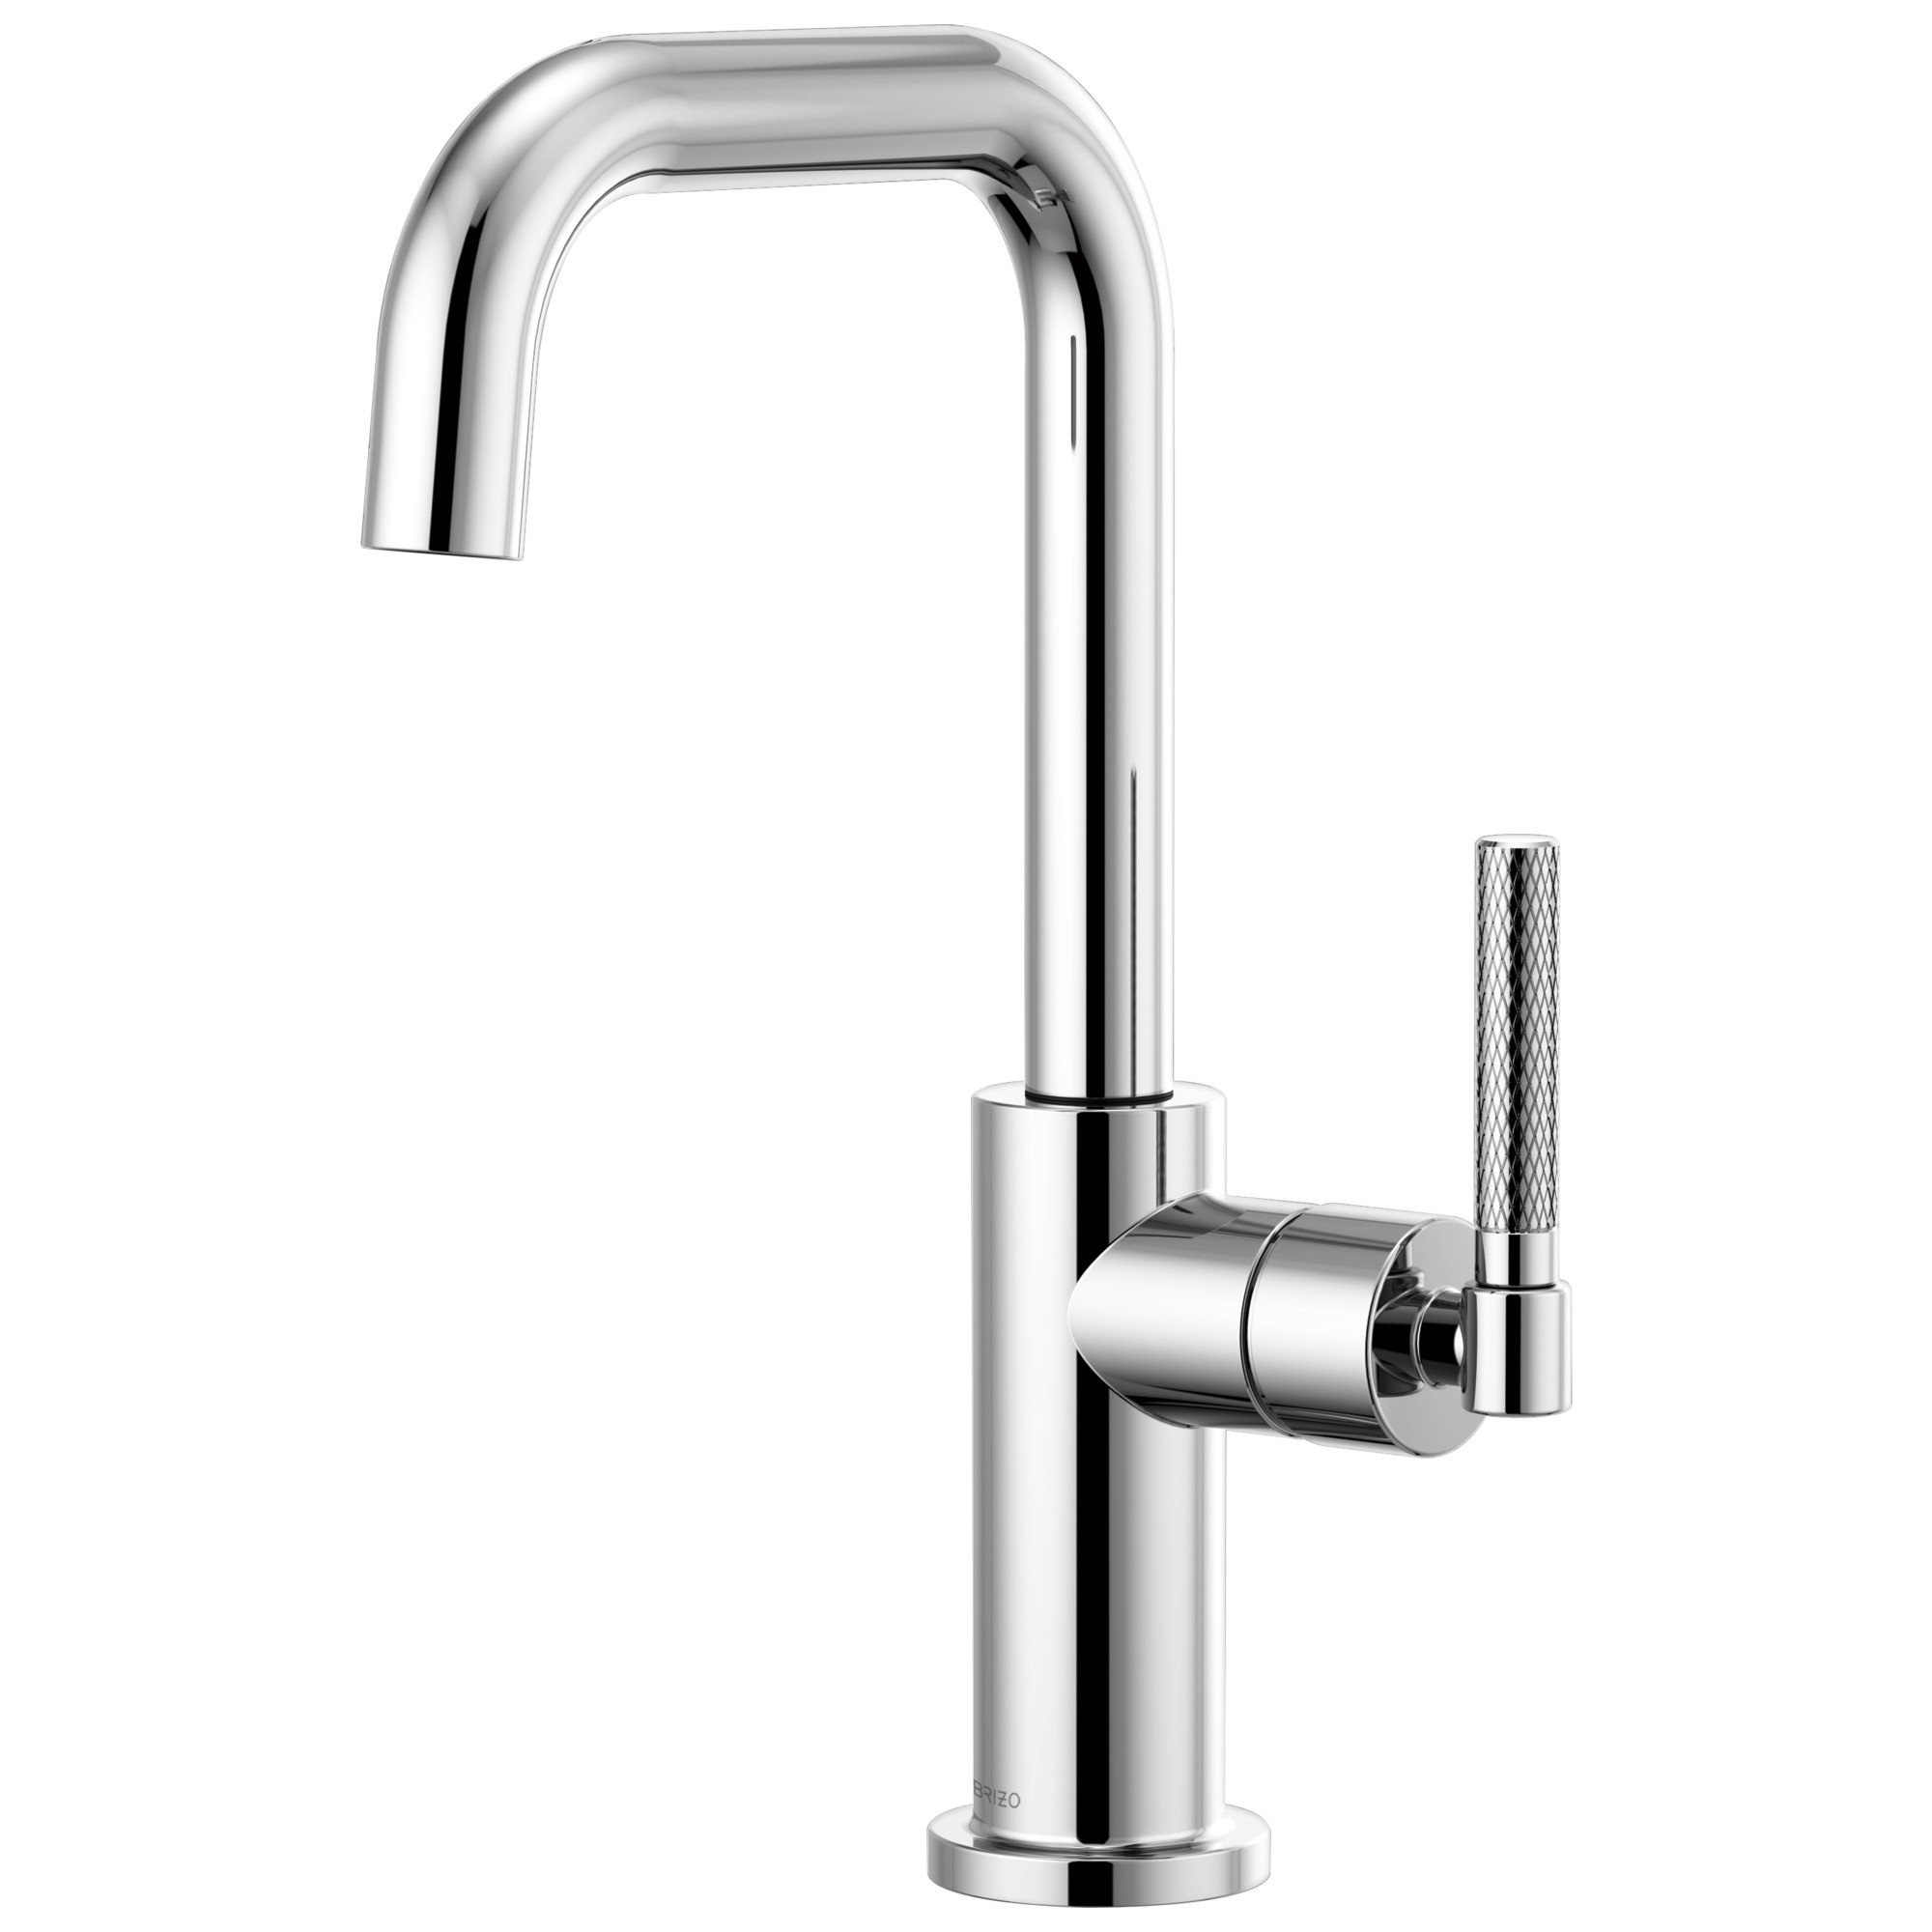 Brizo 61053LF-PC Litze Bar Faucet with Square Spout and Knurled Handle - Chrome